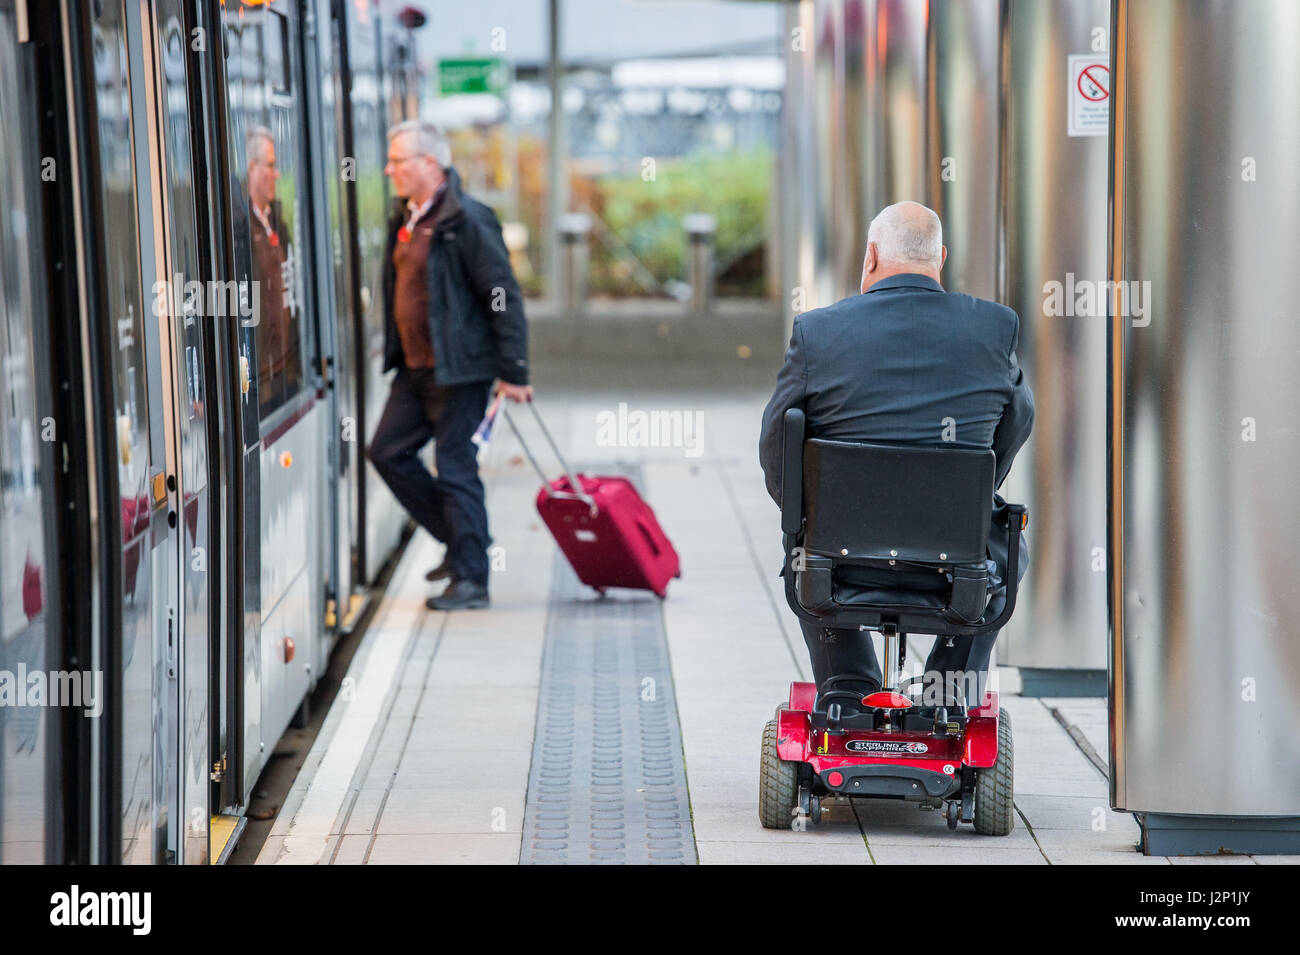 Photographer Ian Georgeson, 07921 567360 Transport for Edinburgh, Trams, Mobility Scooter, Disability, George Deeks - Stock Image